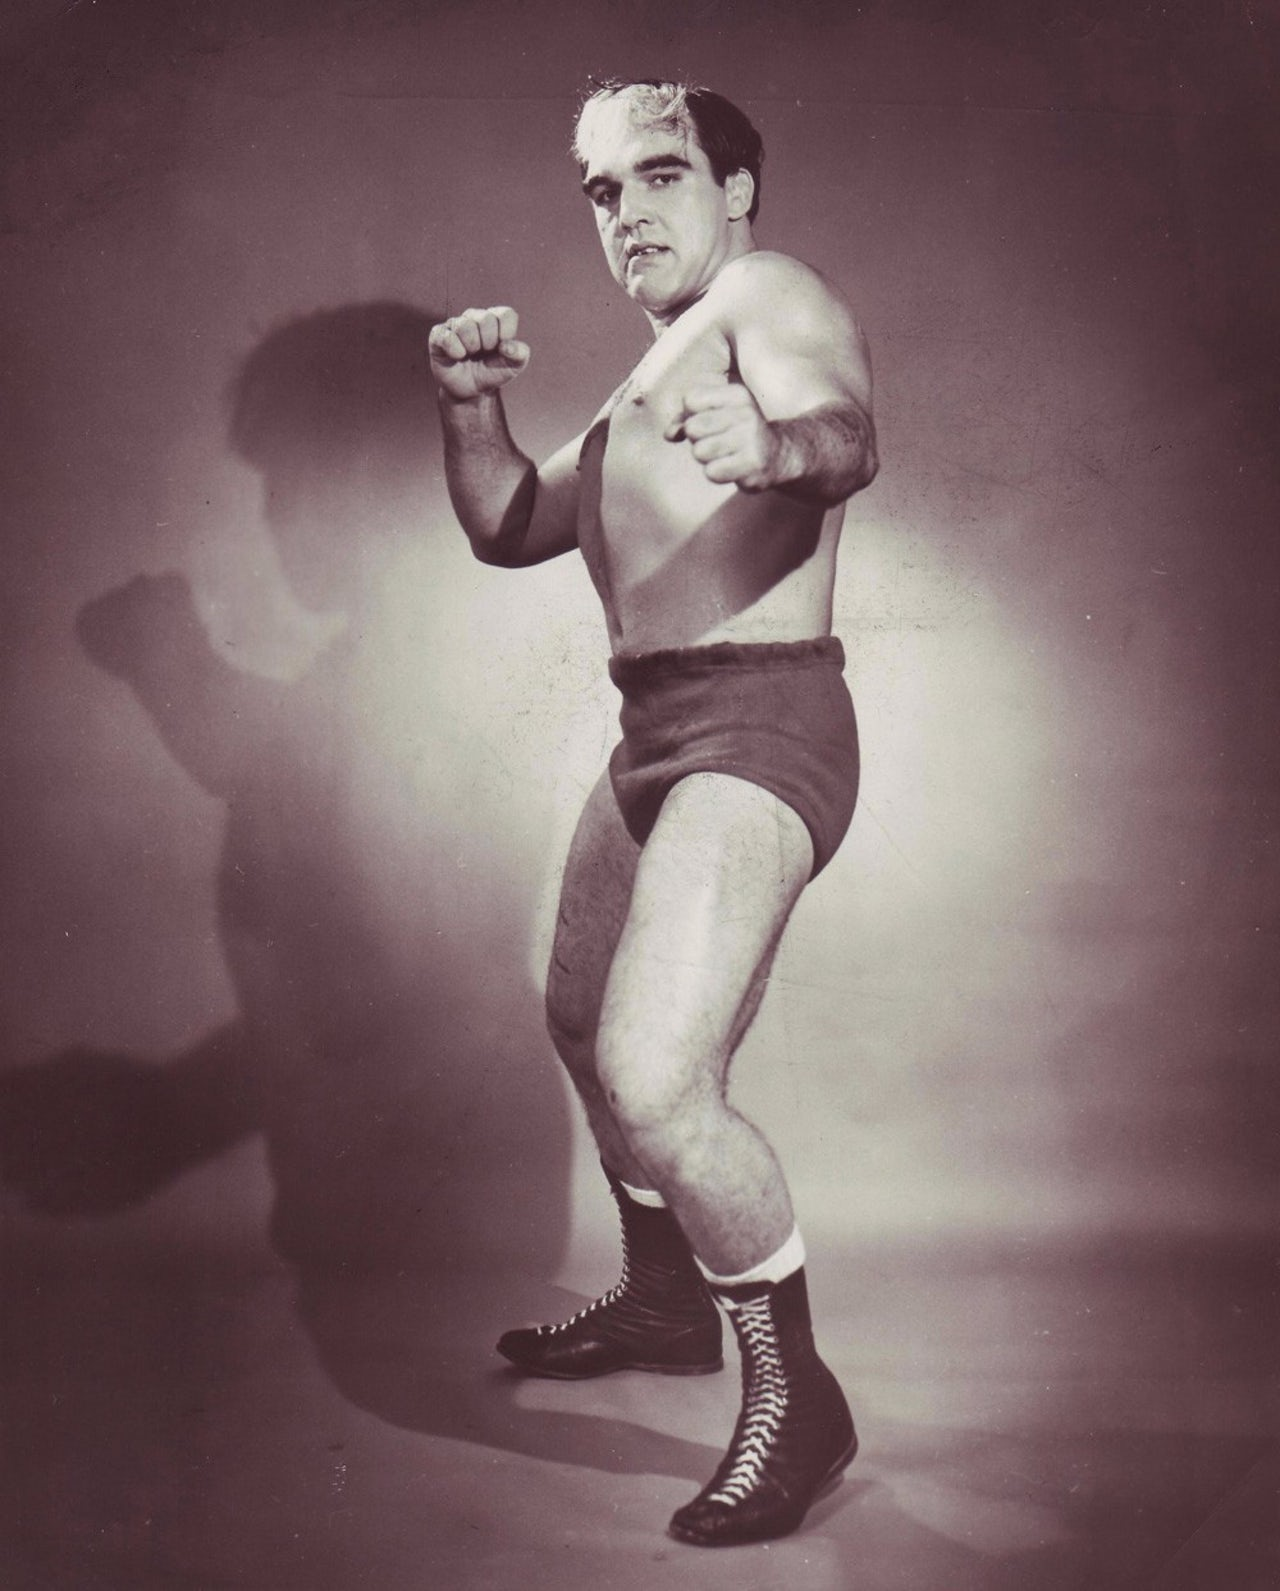 This photo, taken in the late 1950s, is a promotional images used during Monroe's work in the Memphis wrestling promotion.